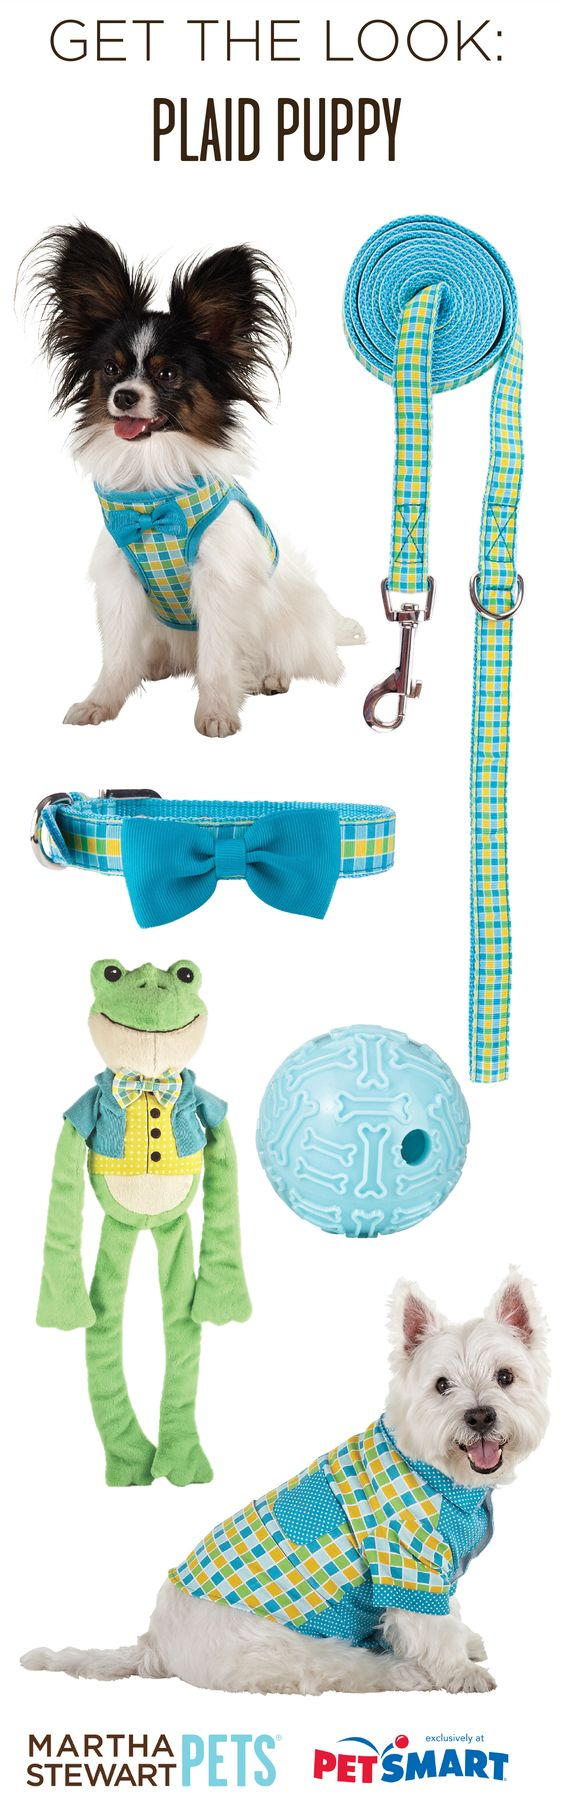 Get The Look: Plaid Puppy